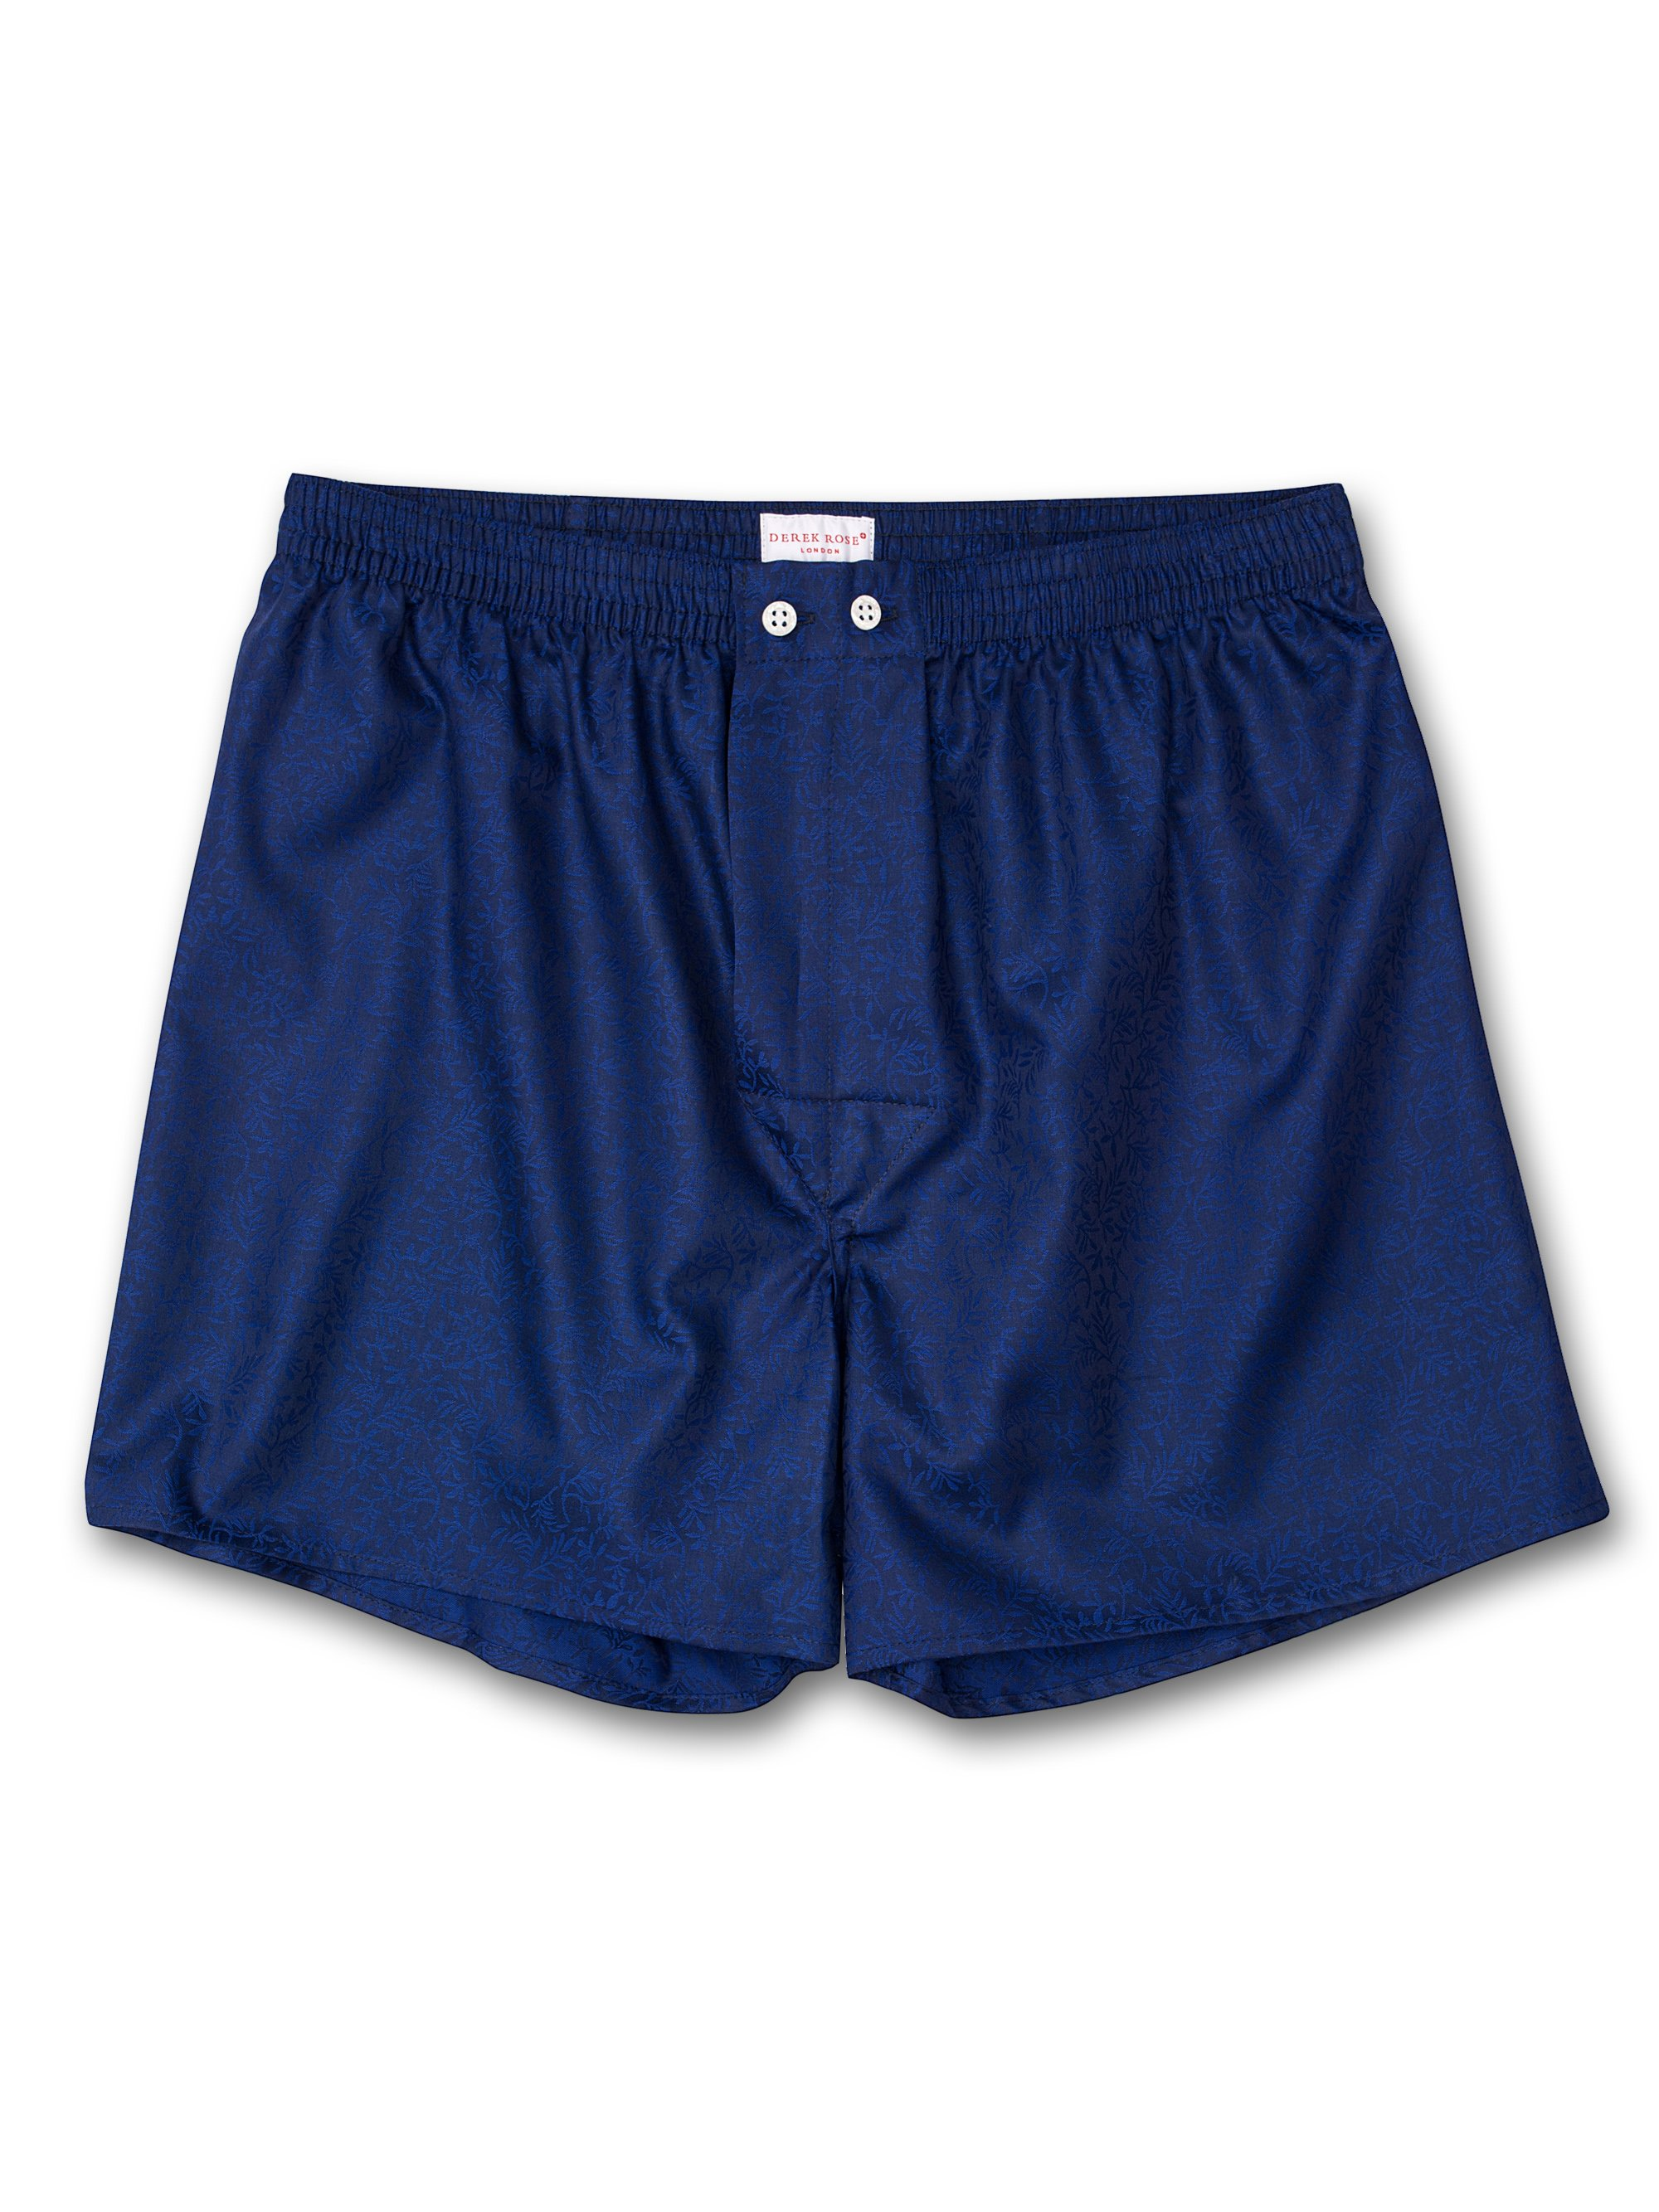 Men's Classic Fit Boxer Shorts Paris 7 Cotton Jacquard Cobalt